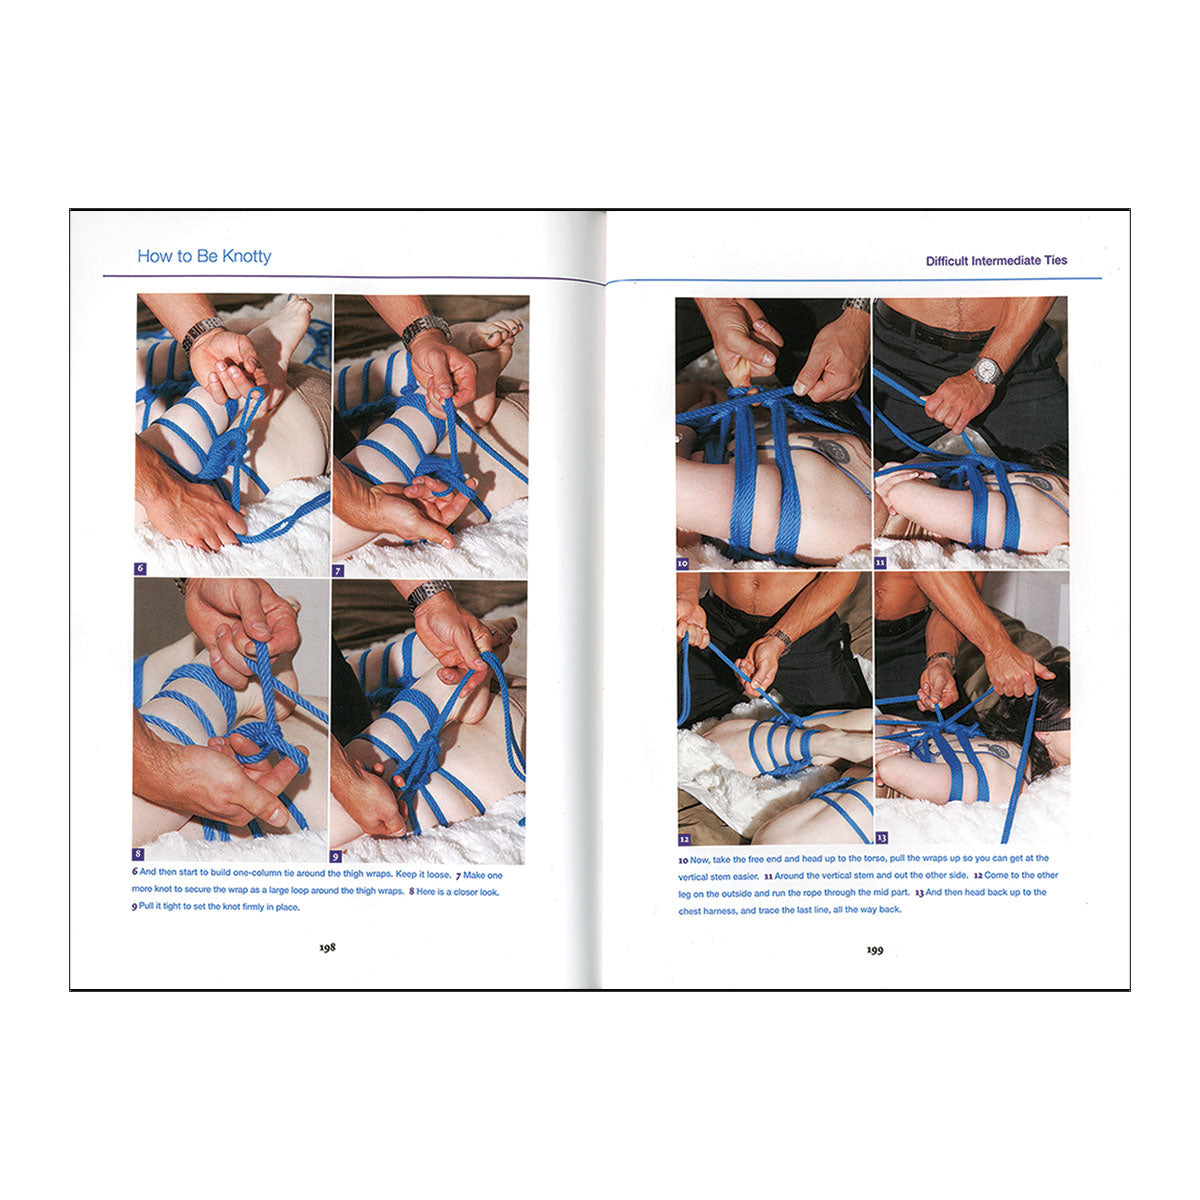 How to be Knotty: The Essential Guide to Modern Rope Bondage Book